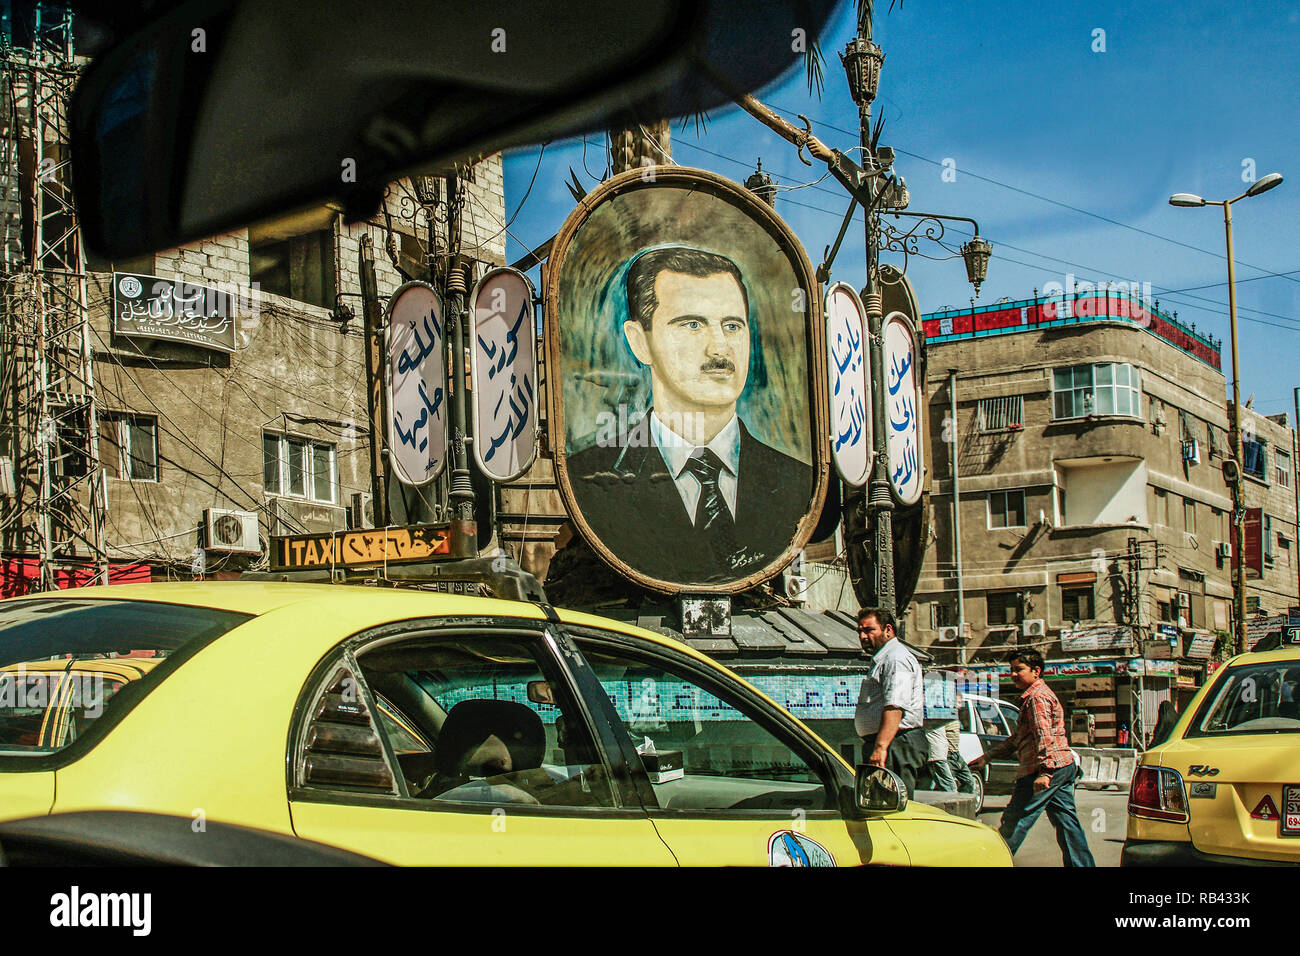 Traffic at Damascus, under the eye of President Bashar al-Assad. Damascus. Syria, Middle East - Stock Image